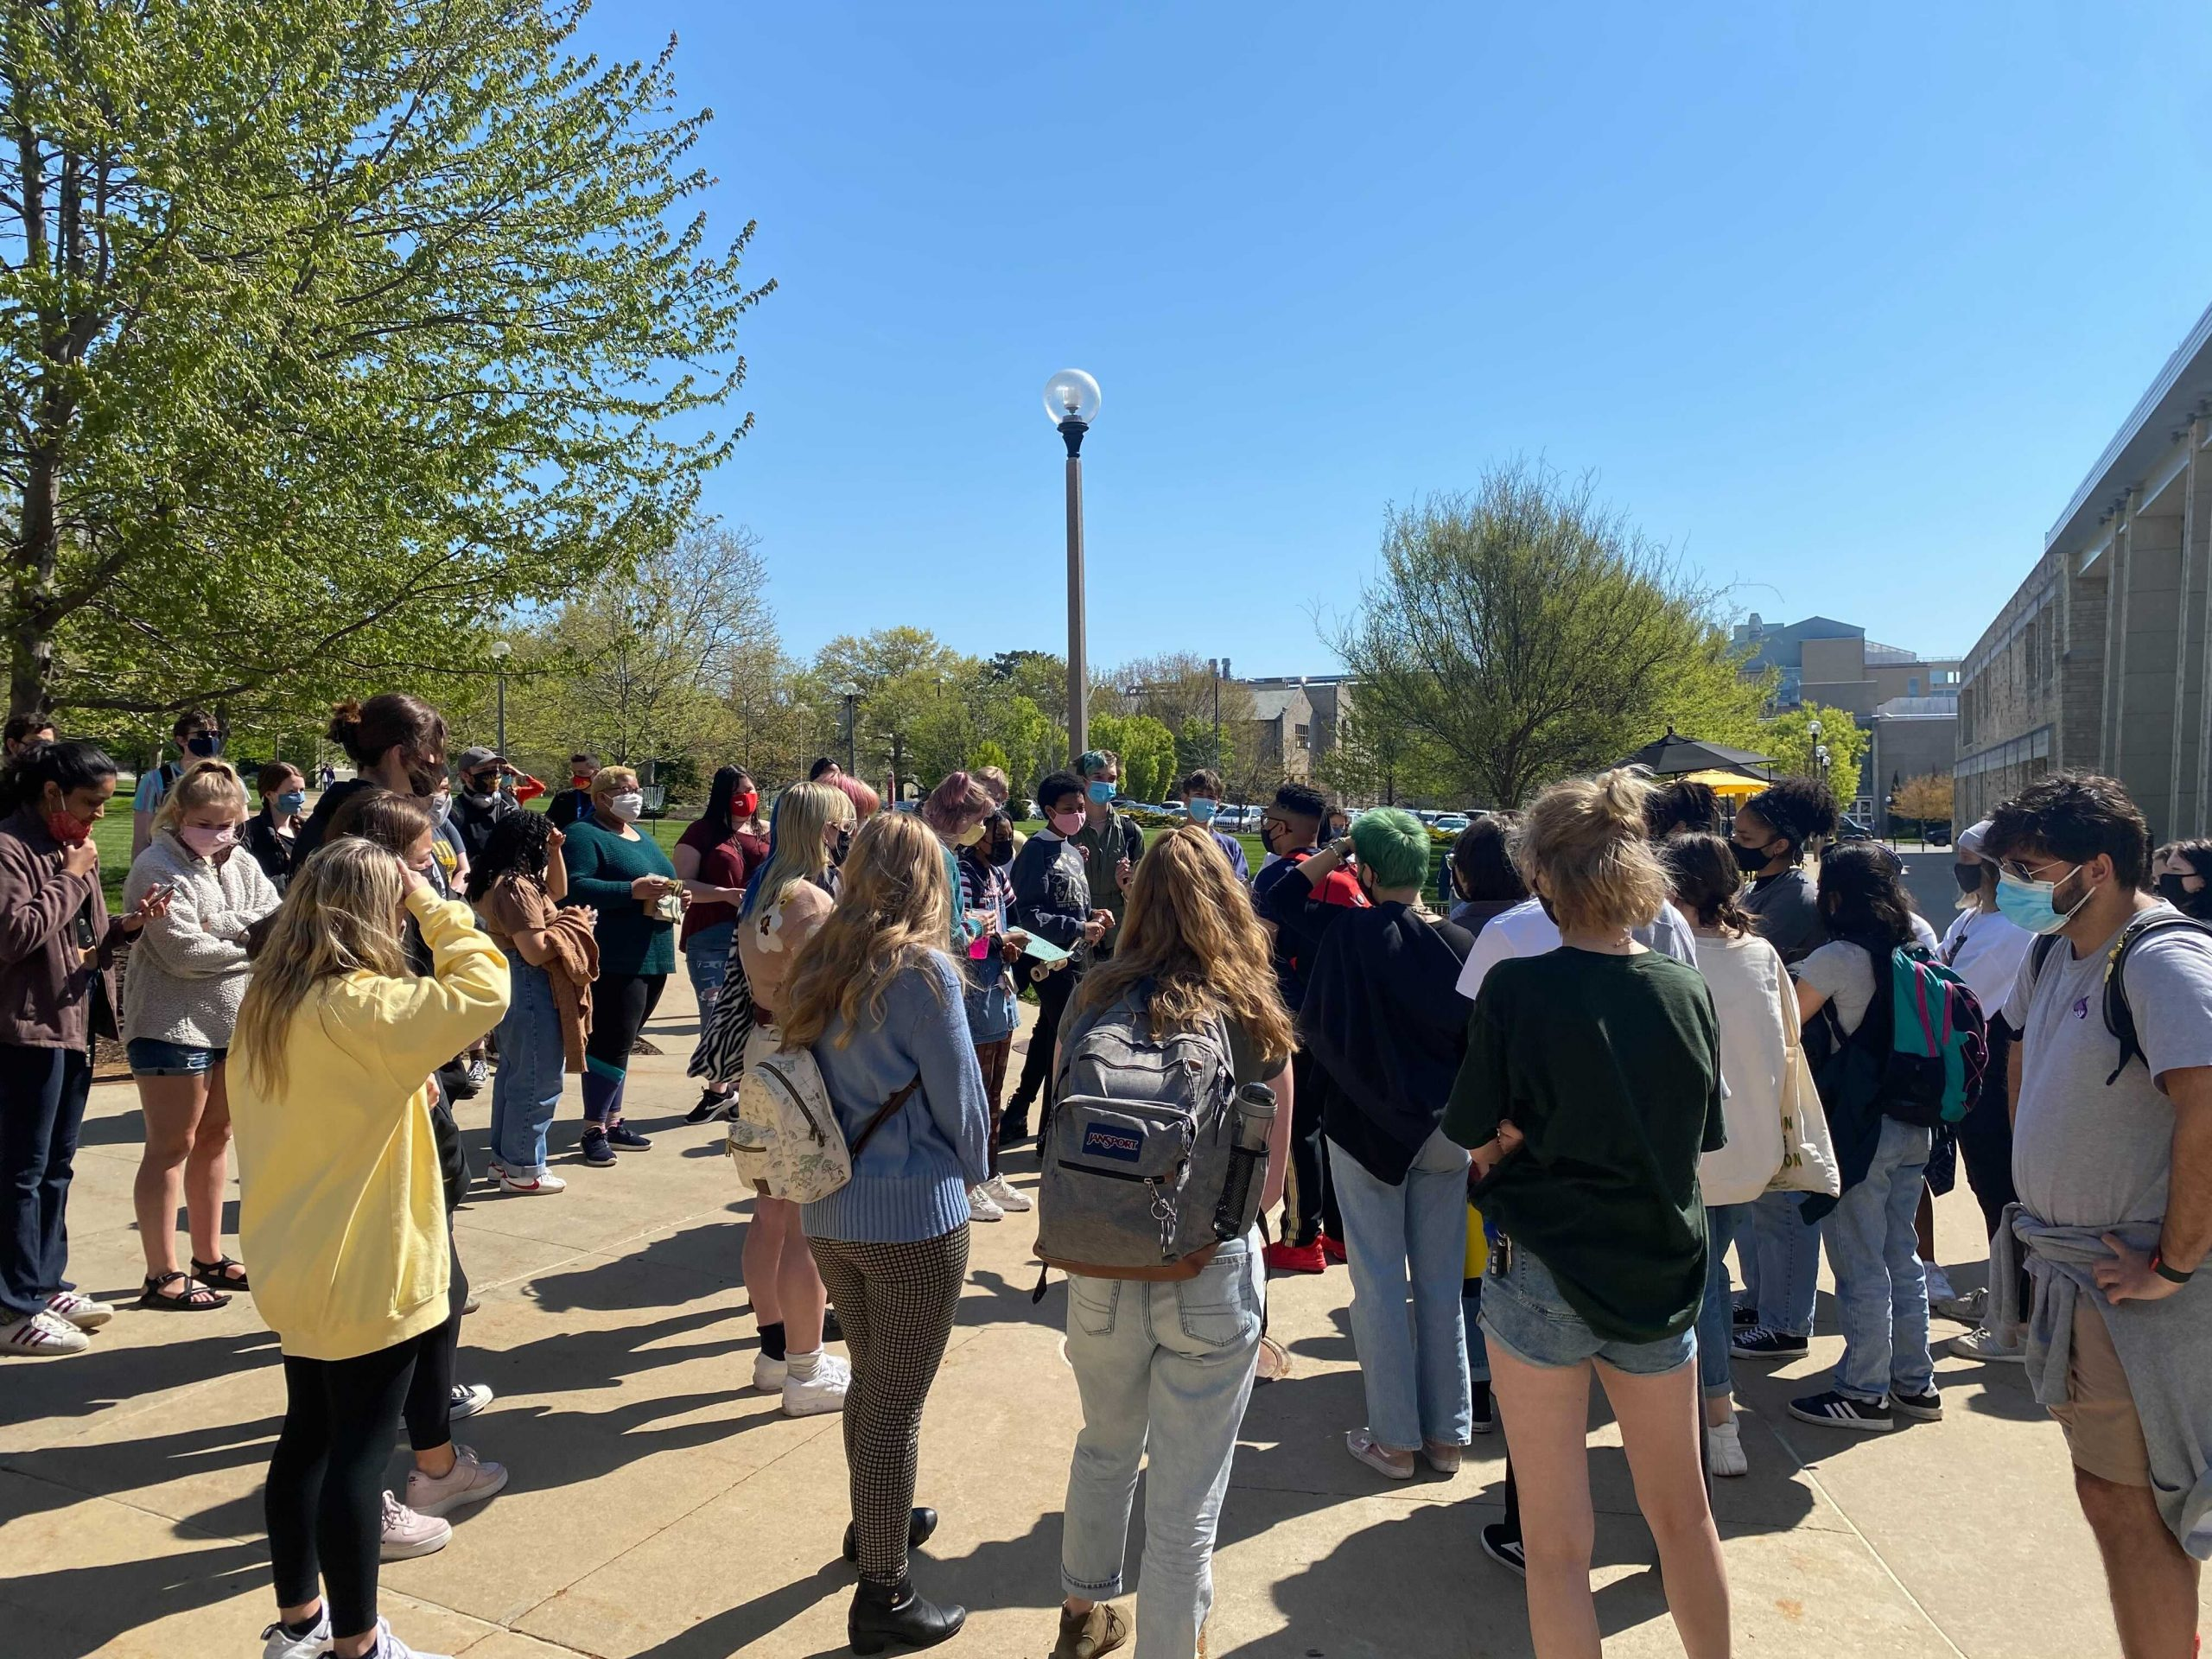 University of Missouri students gather for a protest against changes to campus social justice centers on Monday, April 19, 2021.